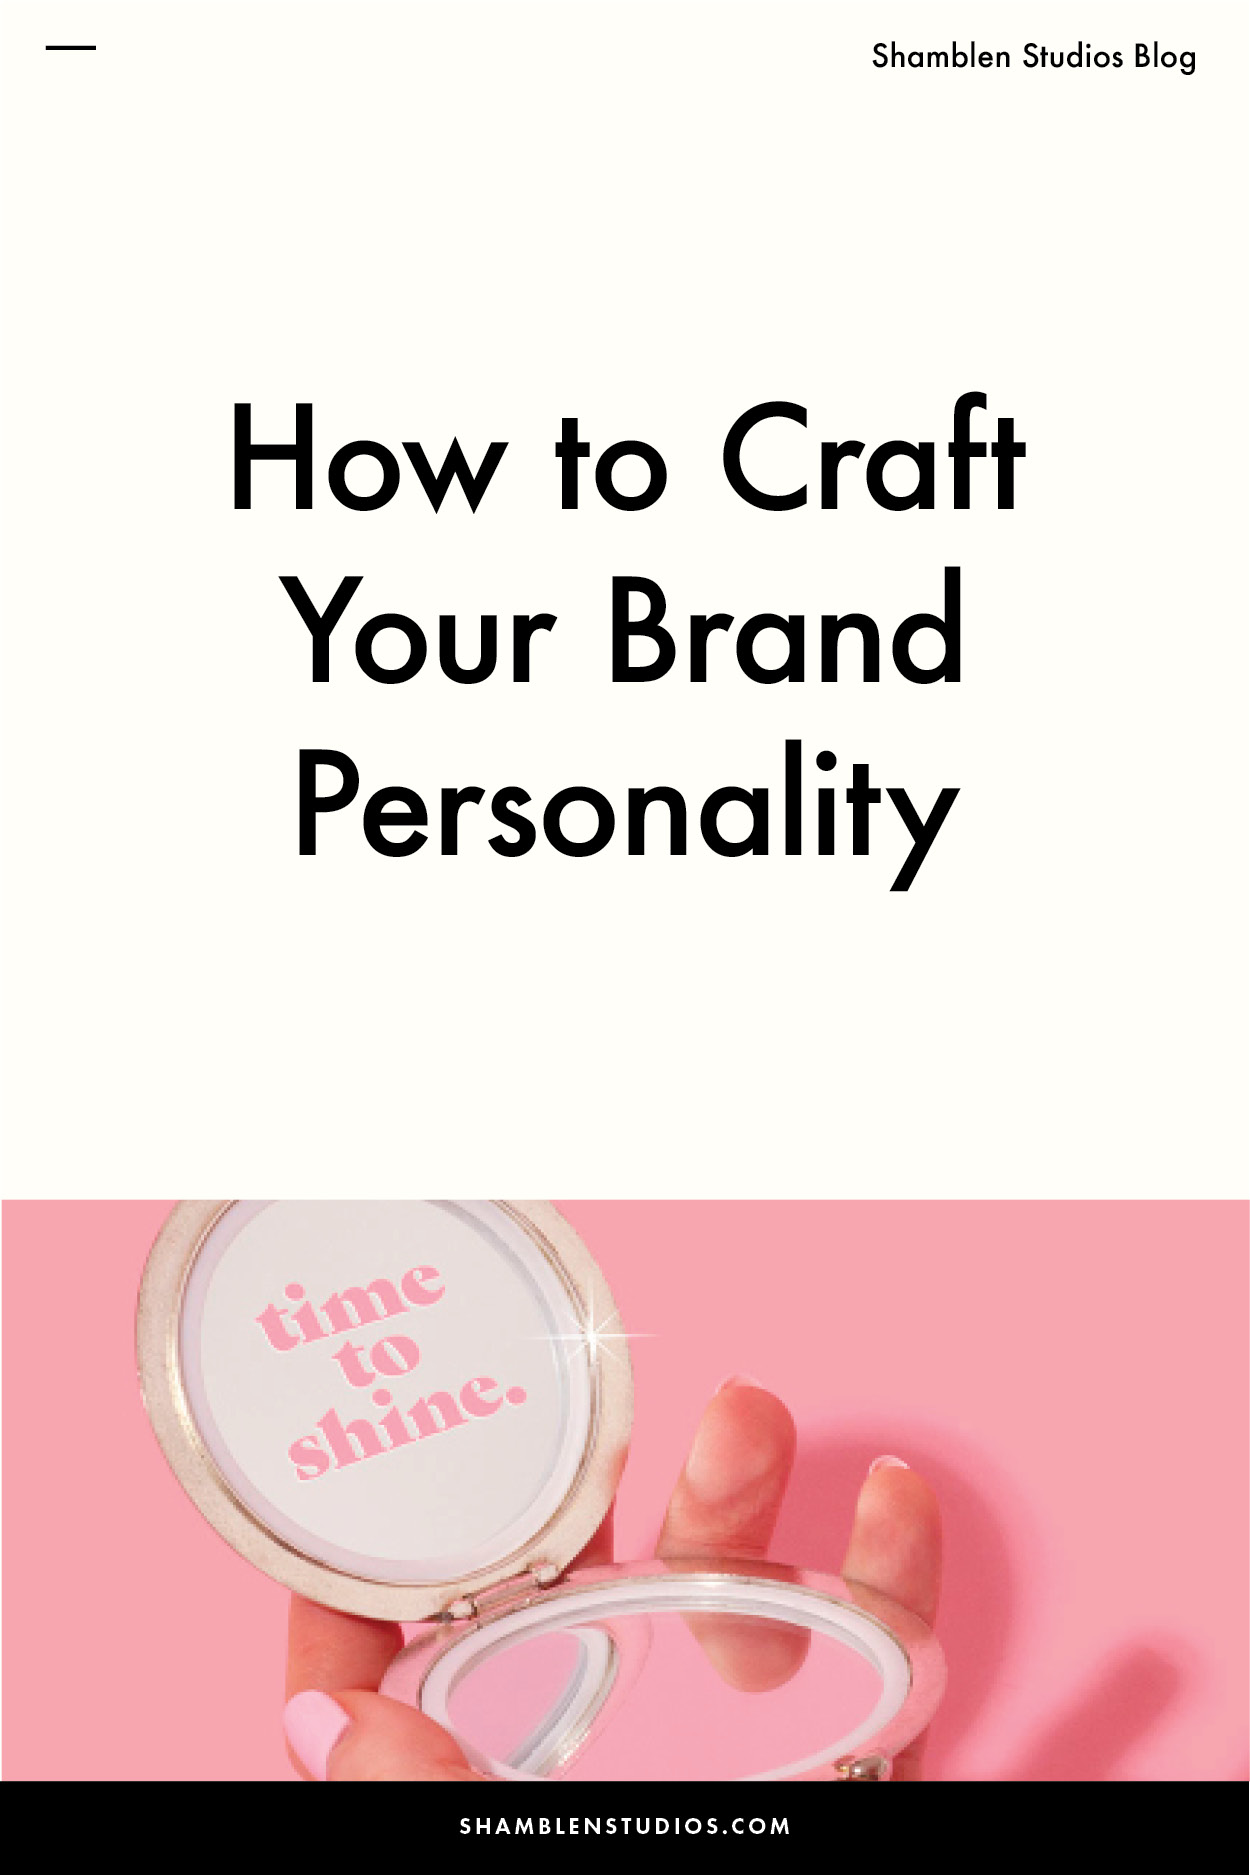 How to Craft Your Brand Personality | Shamblen Studios, Blogging Tips, Photo Tips, Business Tips, Entrepreneur, Self-Development, Photography Tips, Photography Ideas, Art Direction Photography, Content Creation Ideas, Brand Photography, Creative Direction, Stock Photography, Branding